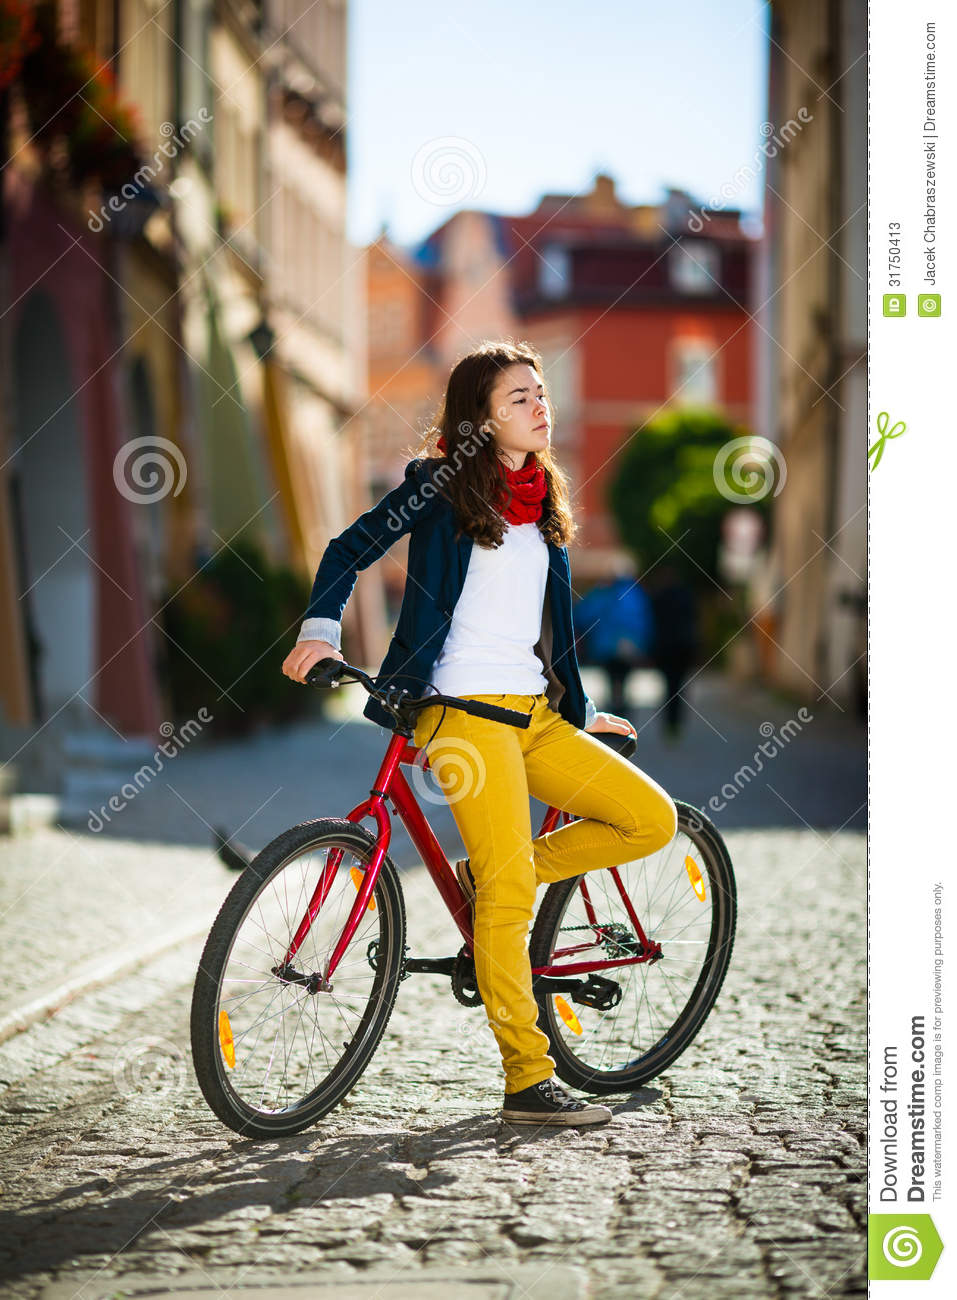 1920x1080 Fall Urban Wallpaper Urban Biking Teenage Girl And Bike In City Stock Image